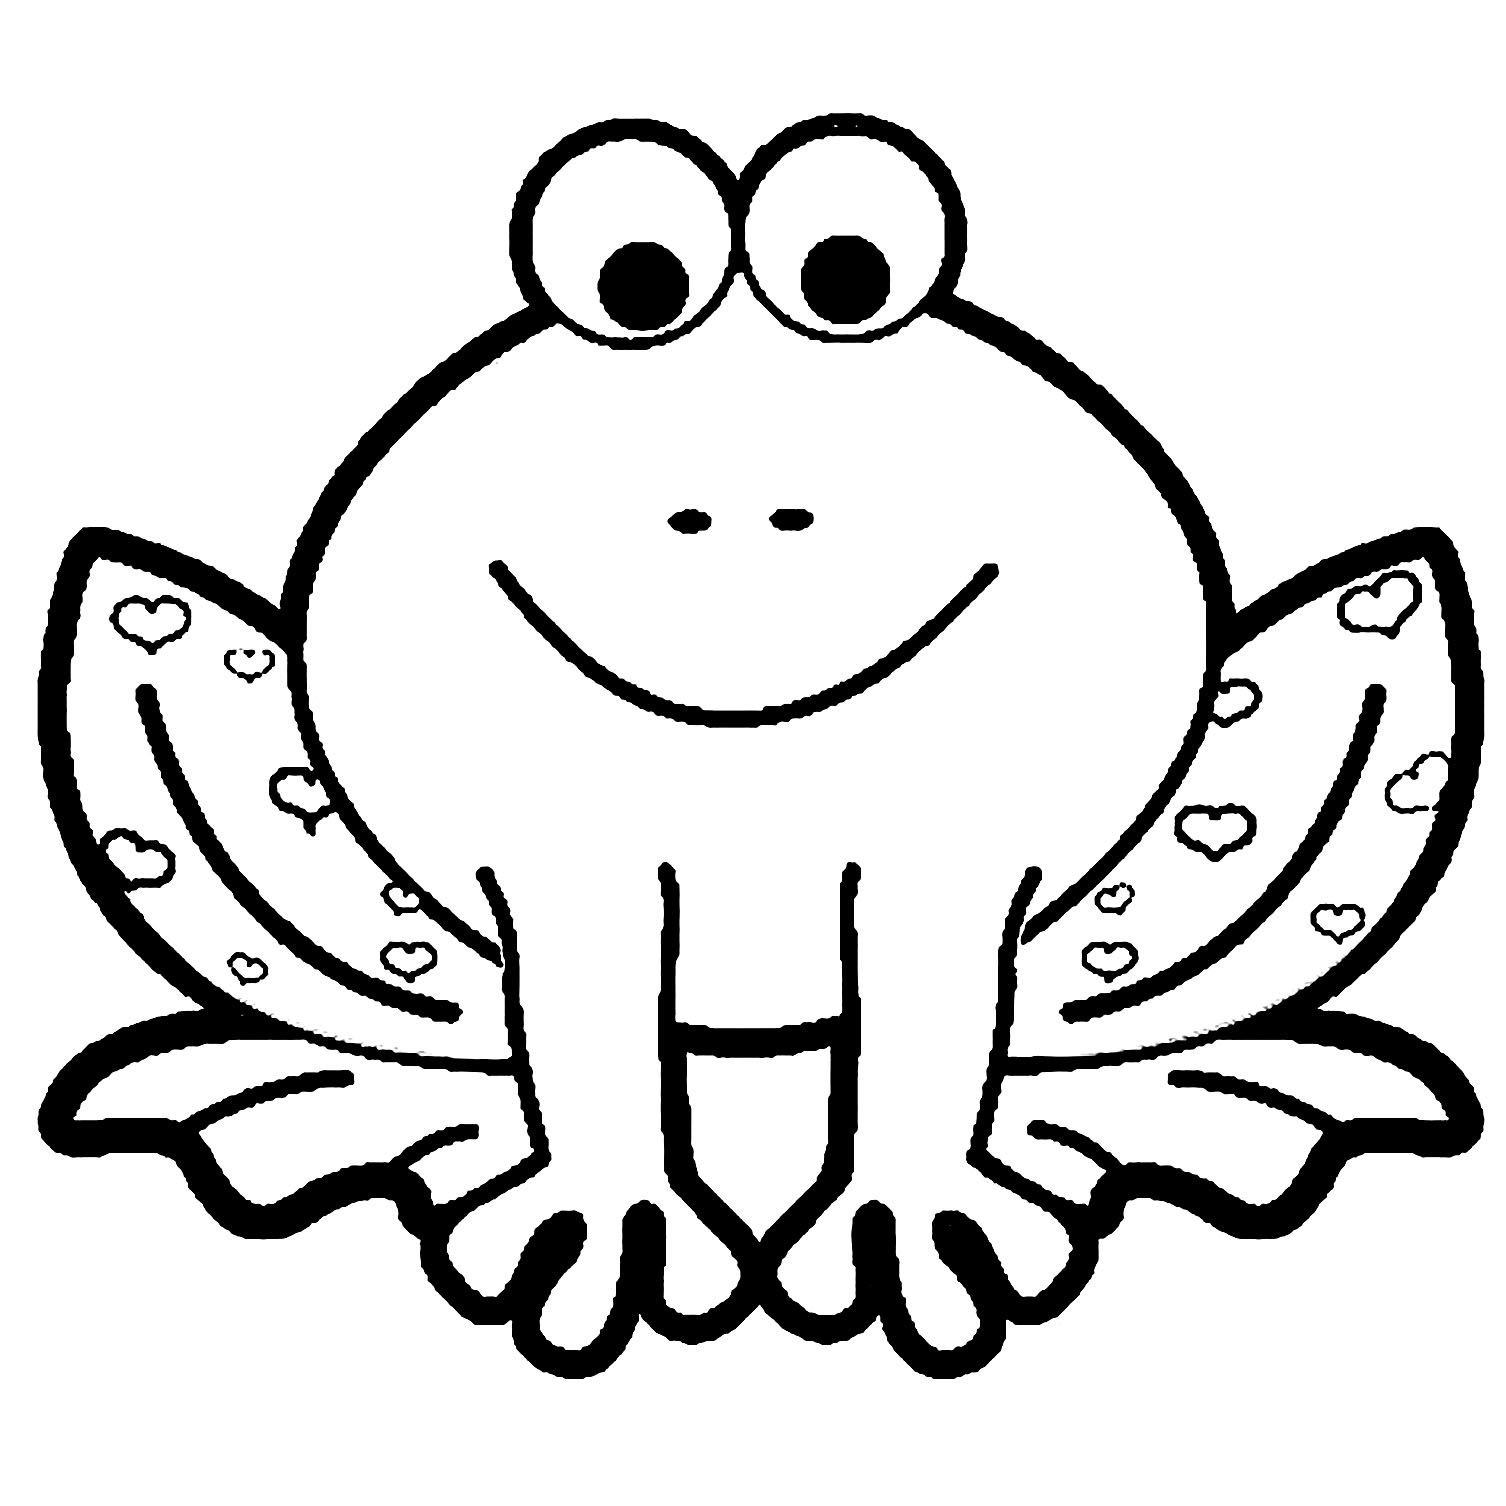 Frogs To Color For Kids Frogs Coloring Page To Download For Free From The Gallery Frogs Keywords Malvorlagen Tiere Malvorlagen Kostenlose Ausmalbilder